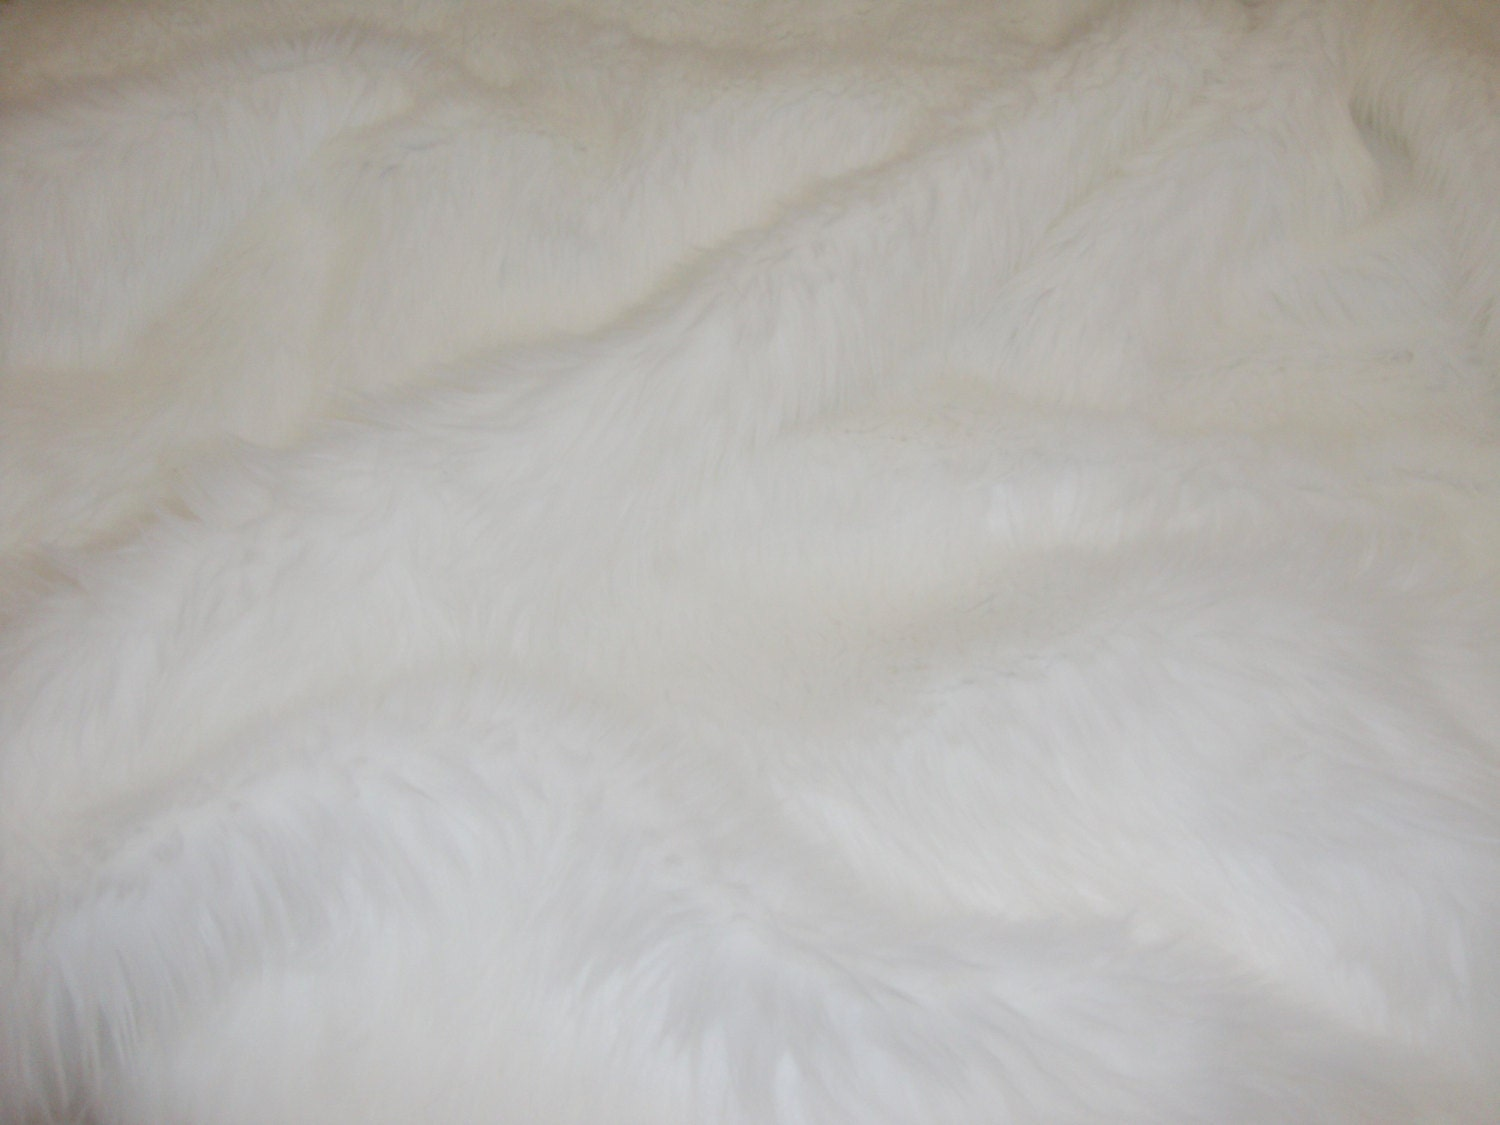 Fur Faux Fake White Shaggy Faux Fur Fabric By The Yard